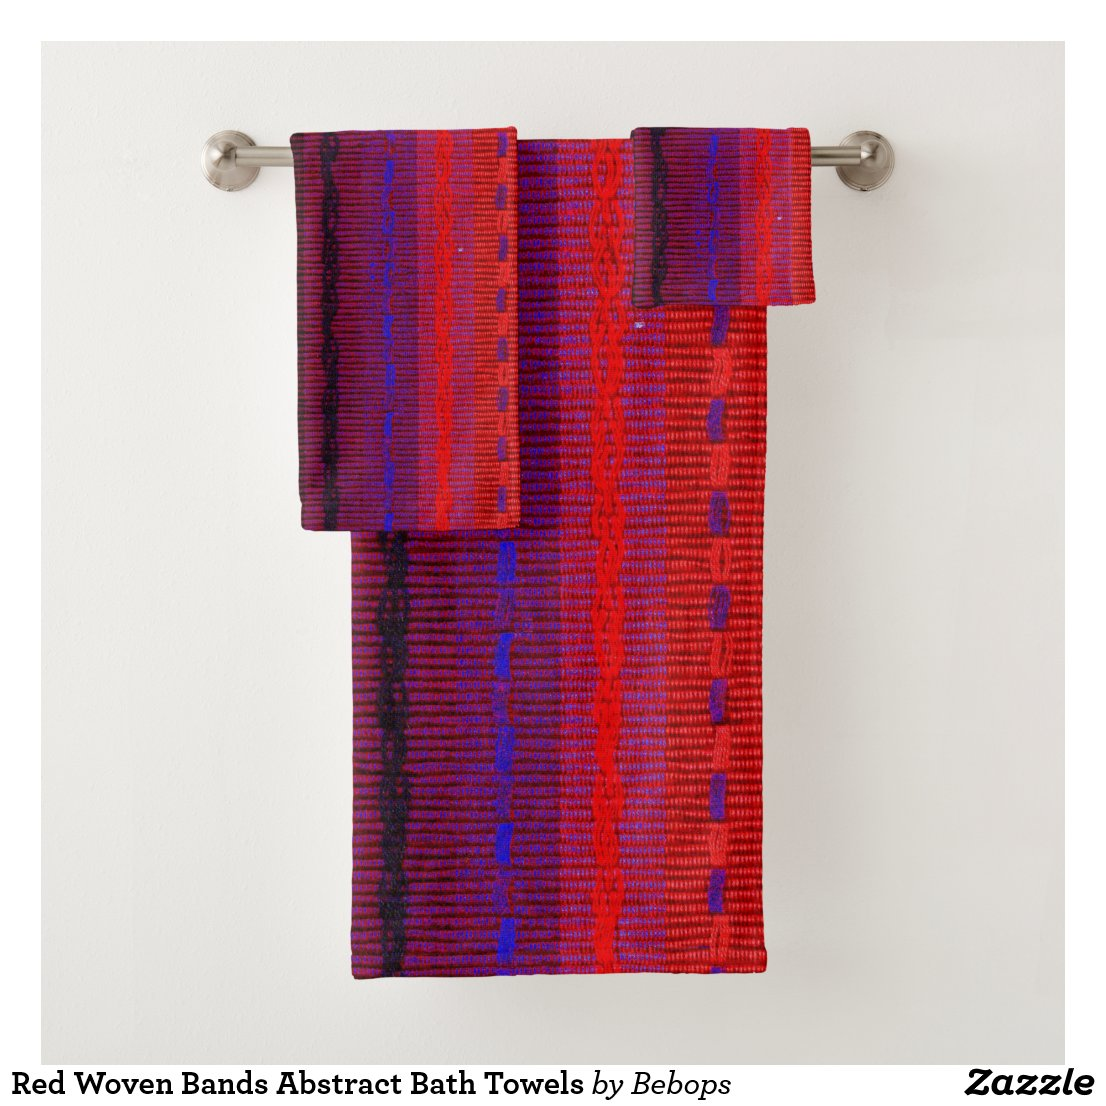 Red Woven Bands Abstract Bath Towels